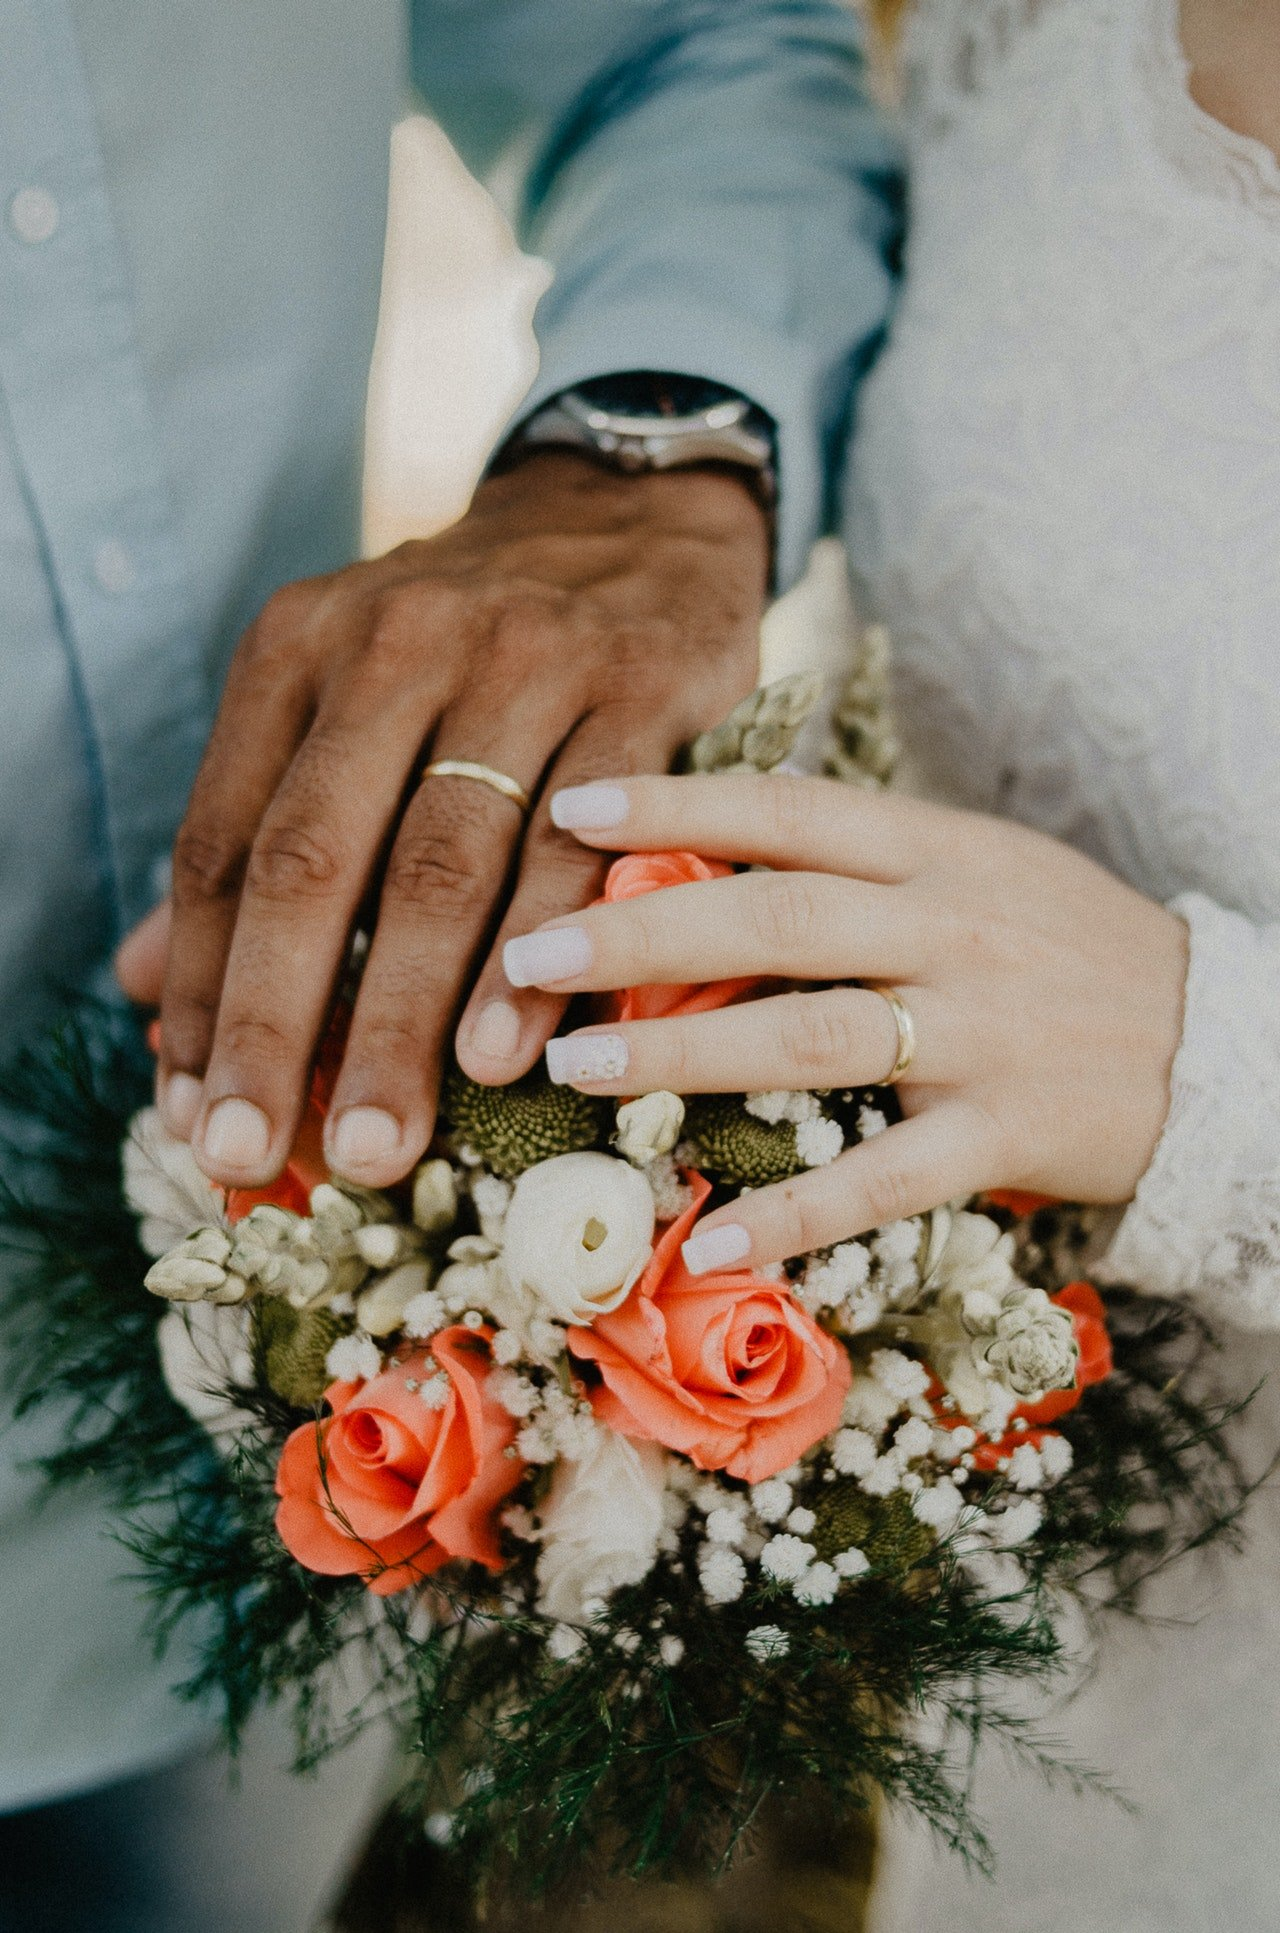 Man and woman's hands on top of flower bouquet   Source: Pexels